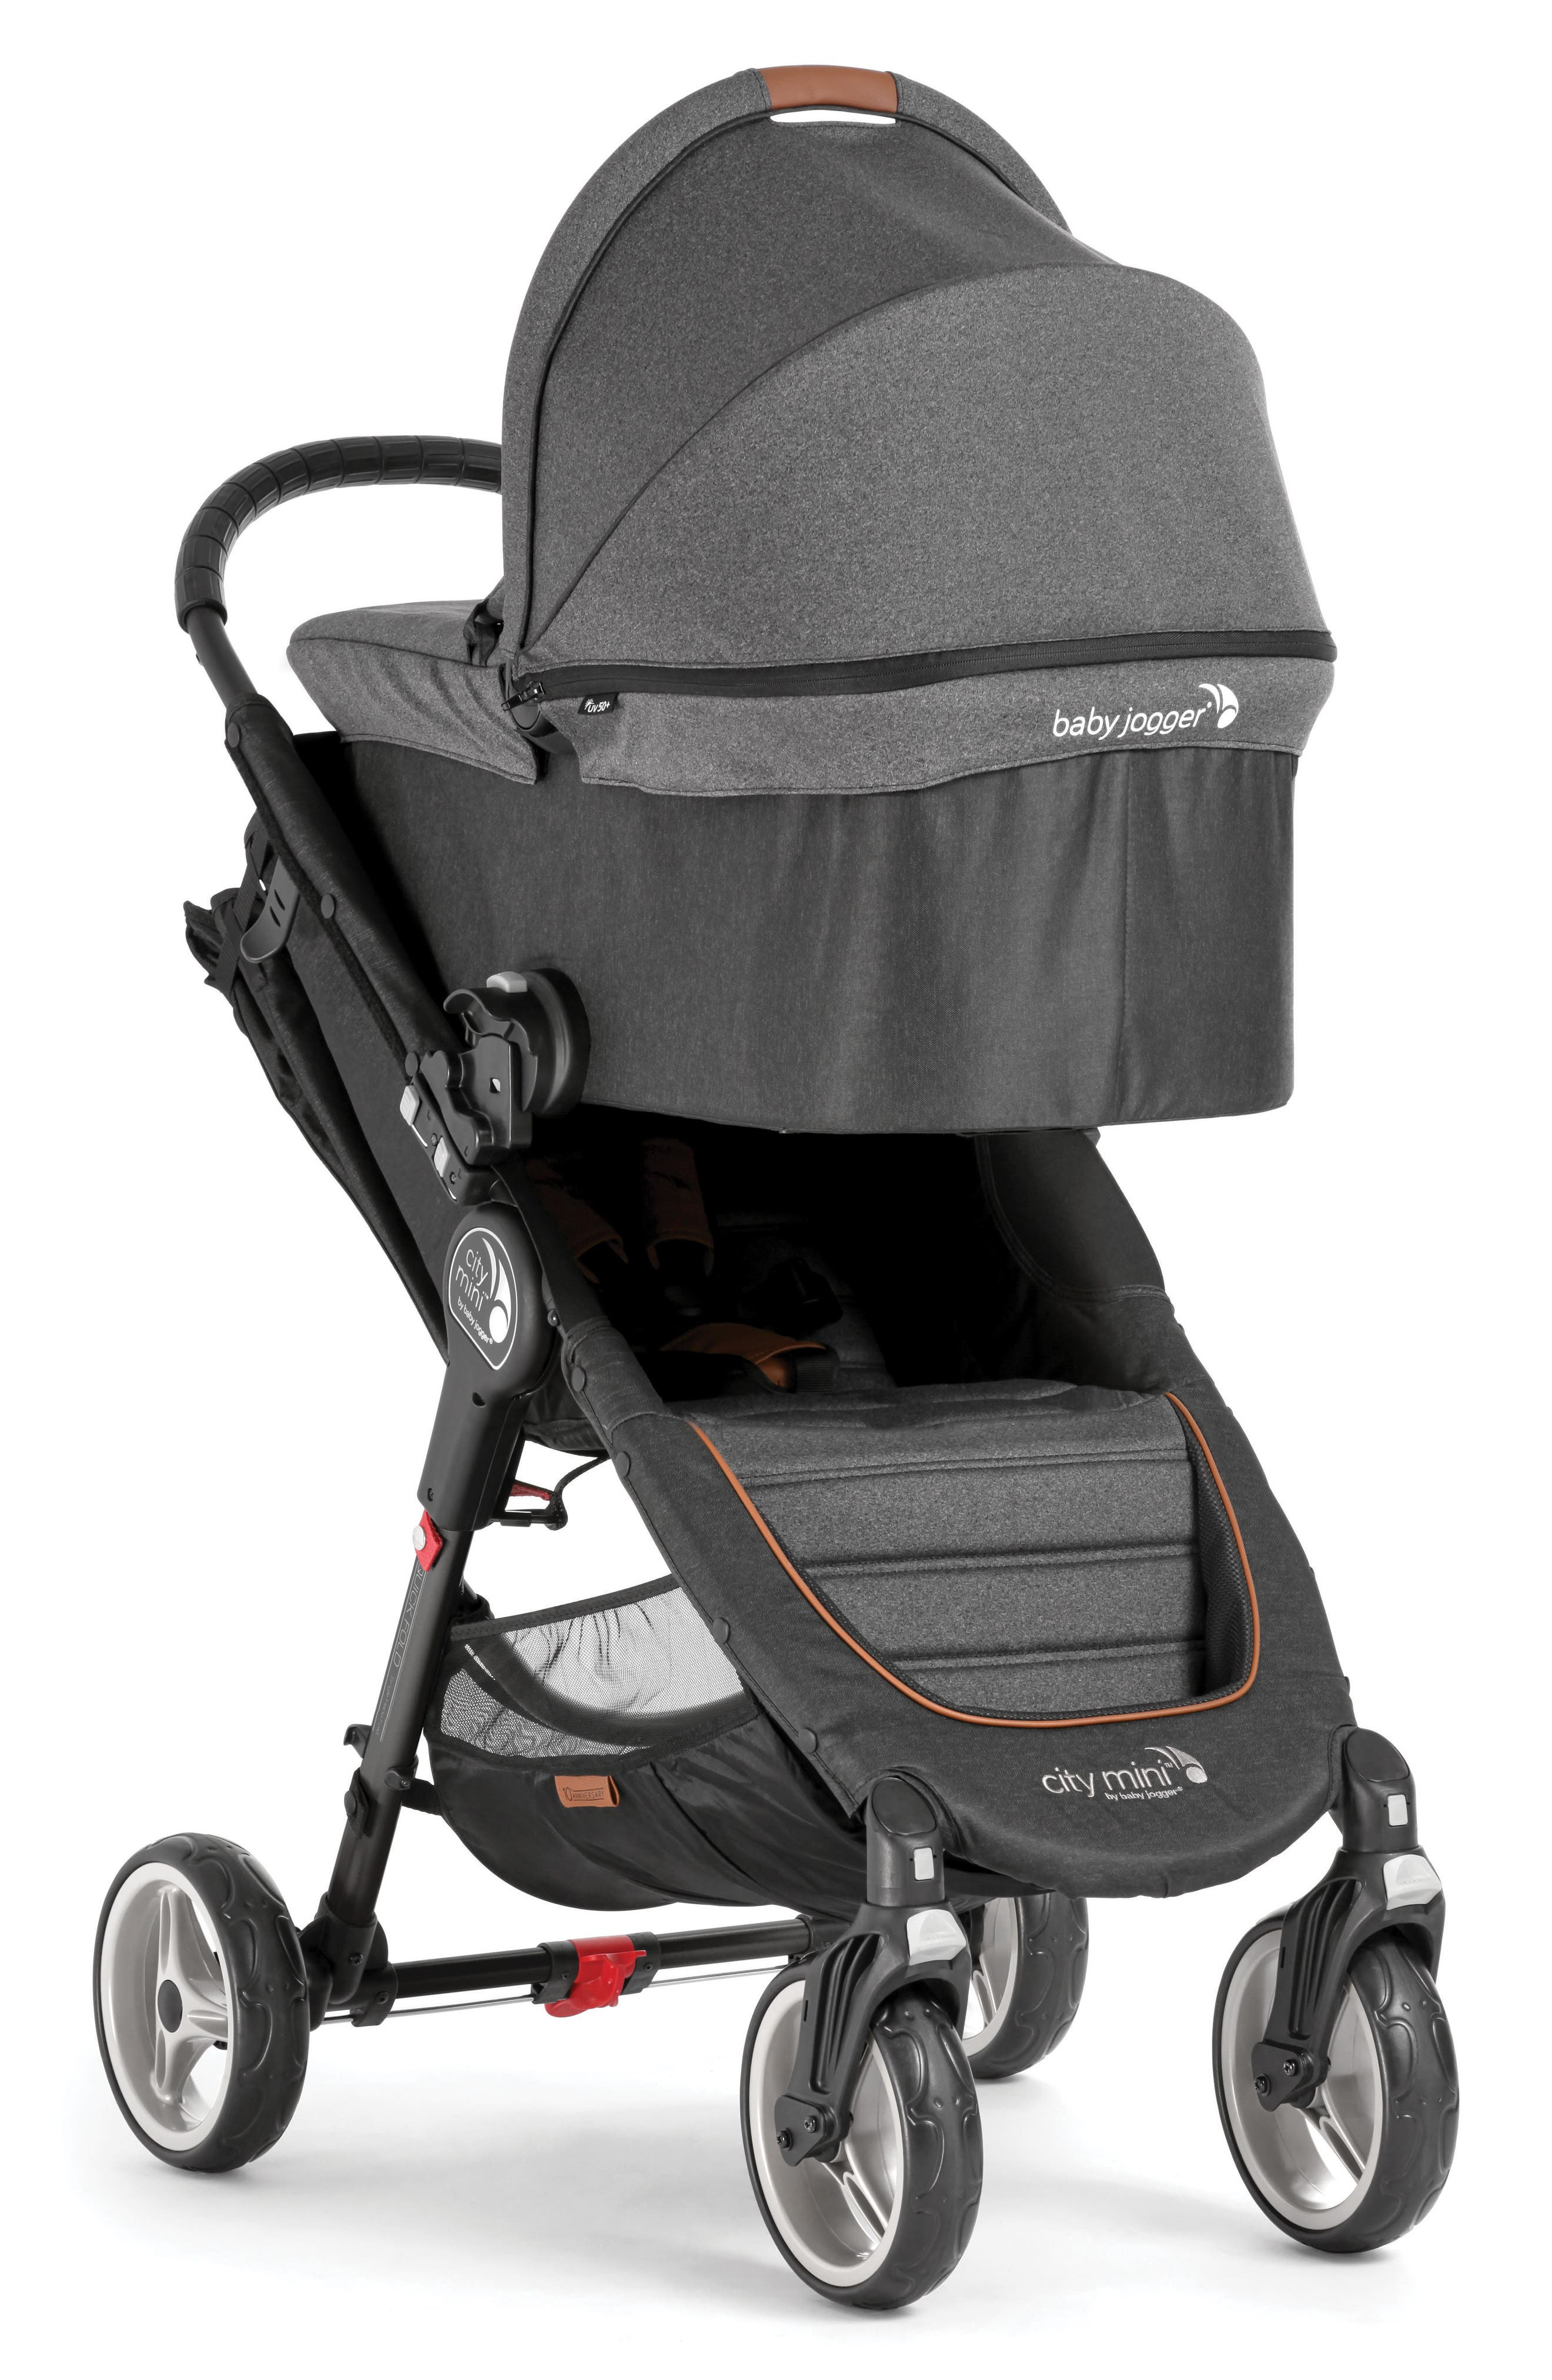 Deluxe Pram Converter Kit for City Mini<sup>®</sup> 2018 Special Edition 10-Year Anniversary All-Terrain Stroller,                             Alternate thumbnail 7, color,                             Grey